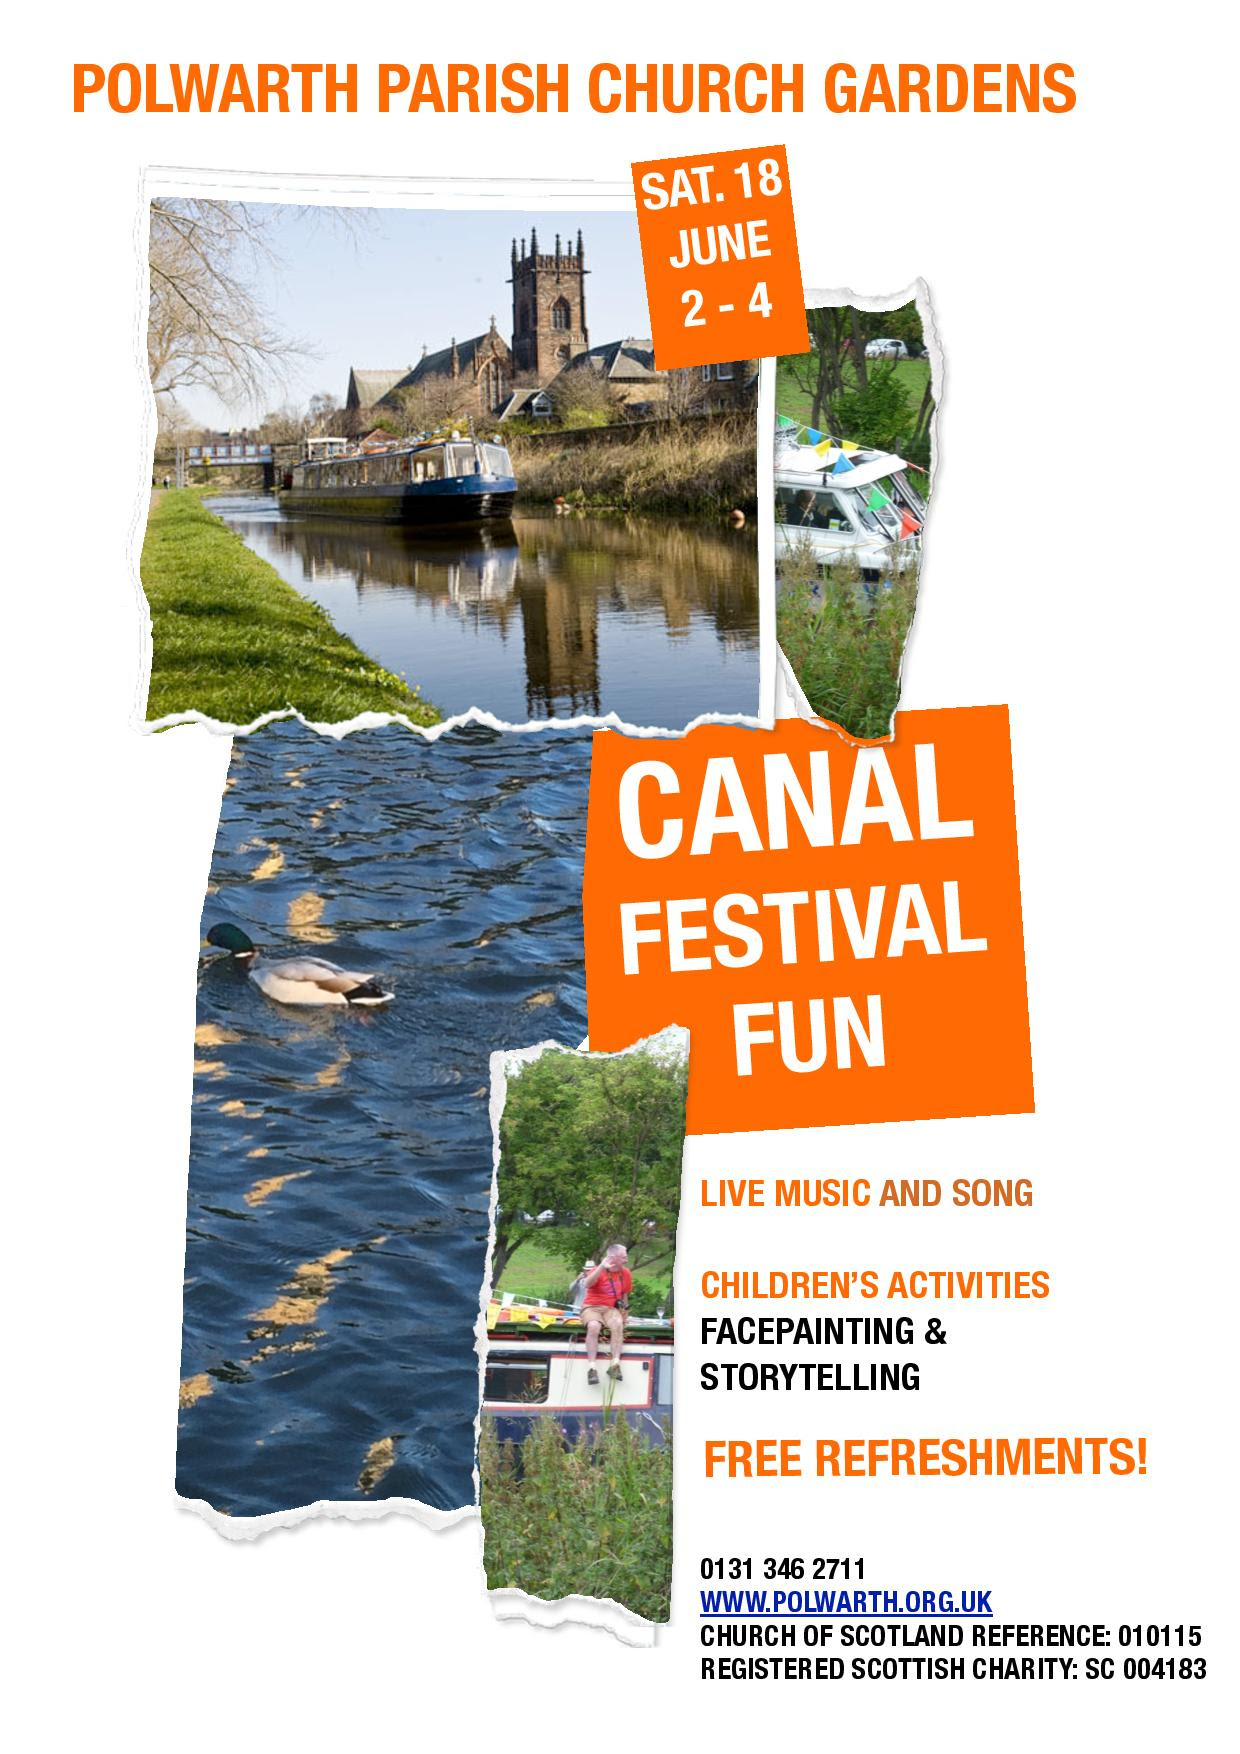 Polwarth_Canal_Festival_publicity_poster-page-001.jpg